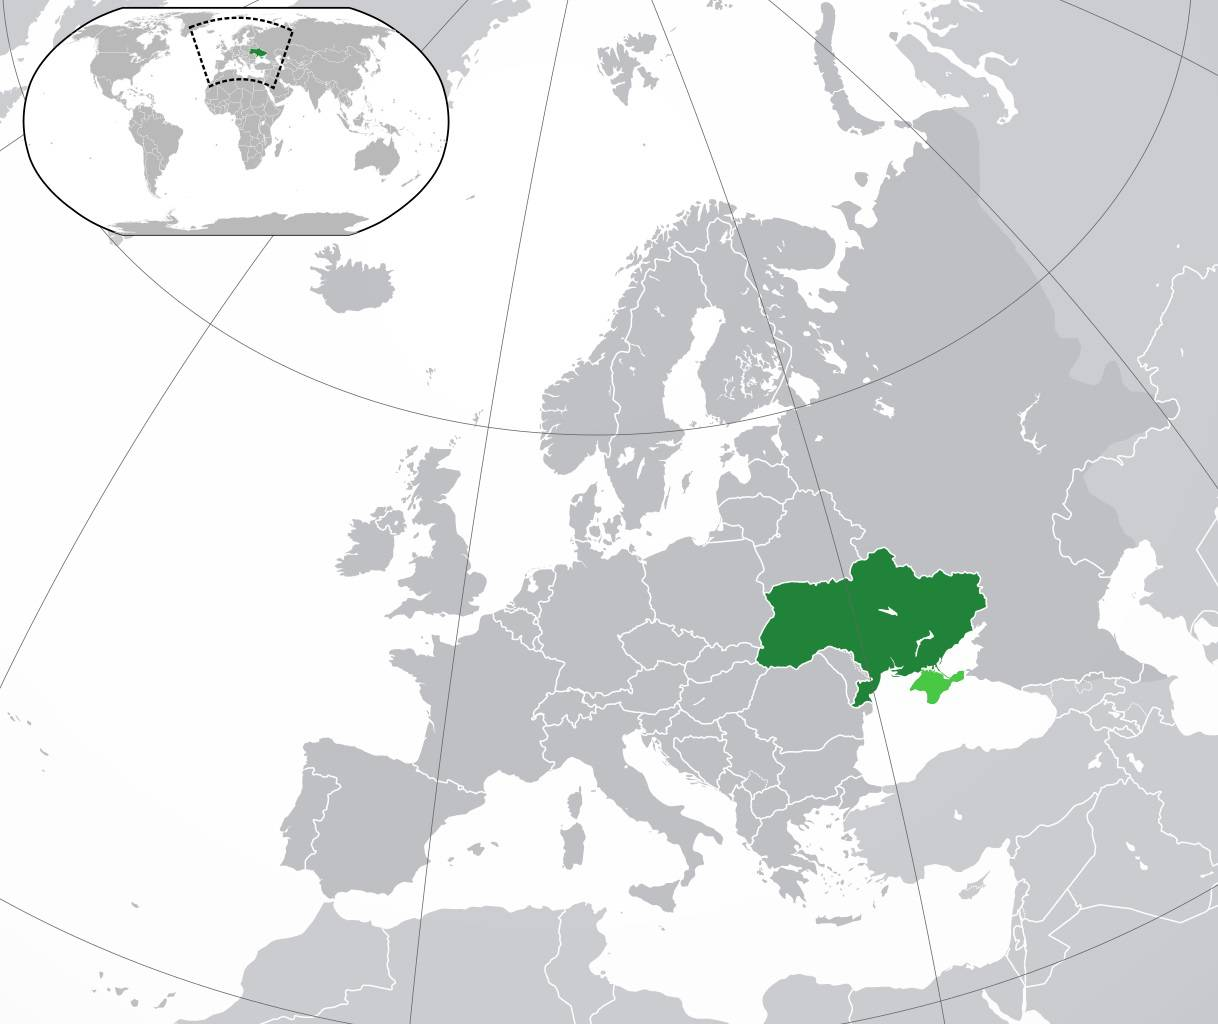 Ukraine sur une carte de l'Europe